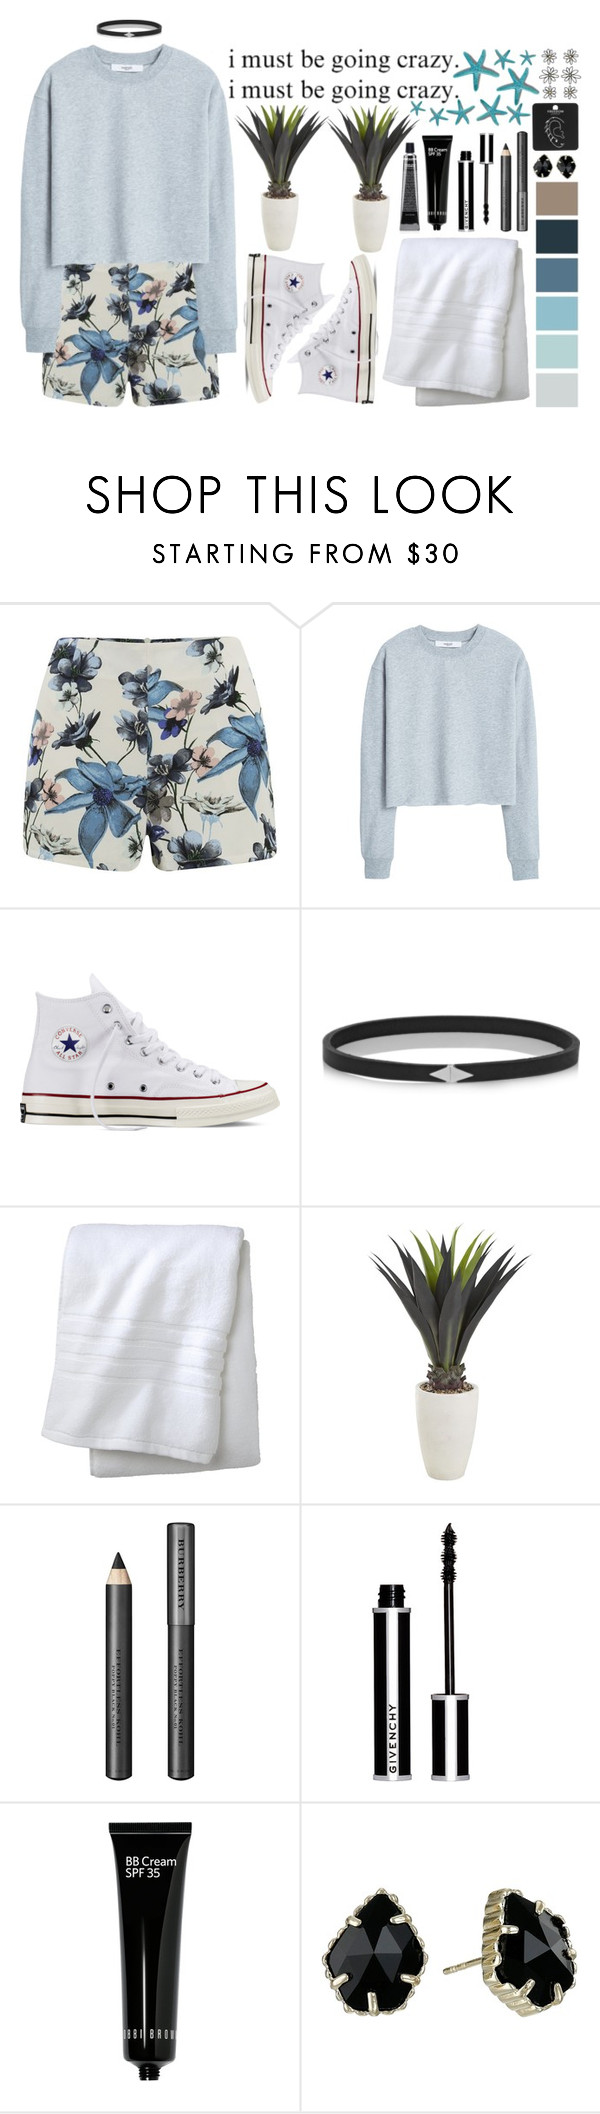 """'You're the judge oh no, set me free'"" by rolovesrunning ❤ liked on Polyvore featuring ONLY, MANGO, Converse, Wendy Nichol, Fieldcrest, Burberry, Givenchy, Grown Alchemist, Bobbi Brown Cosmetics and Seed Design"